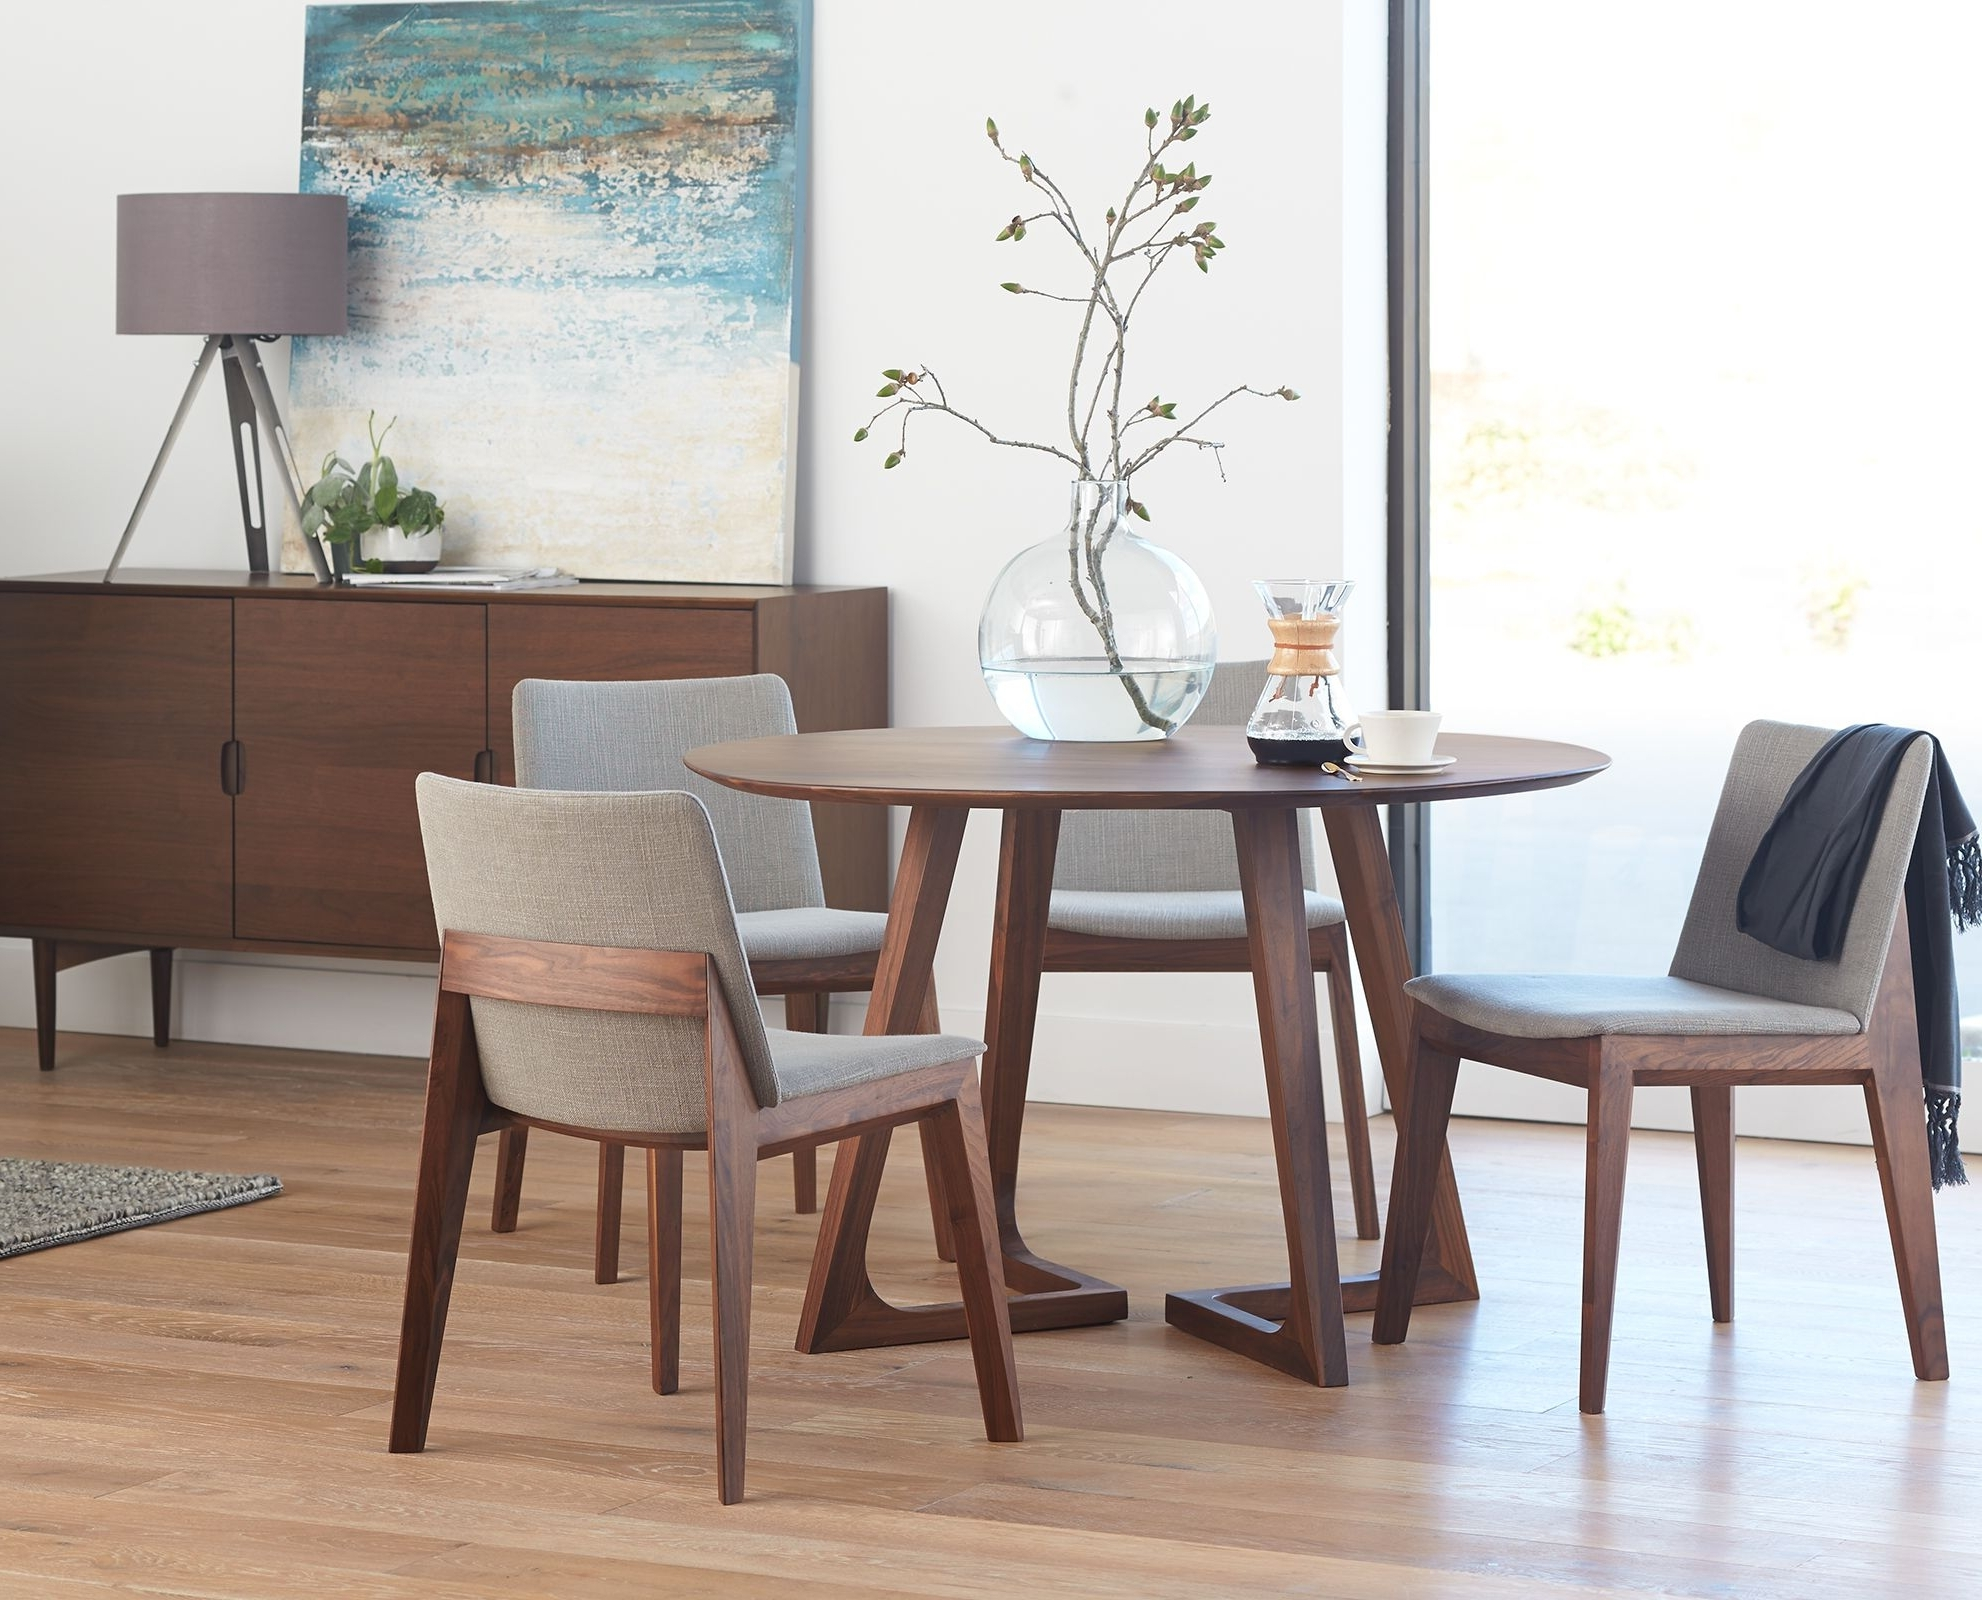 Dining Intended For Market 7 Piece Dining Sets With Host And Side Chairs (View 9 of 25)